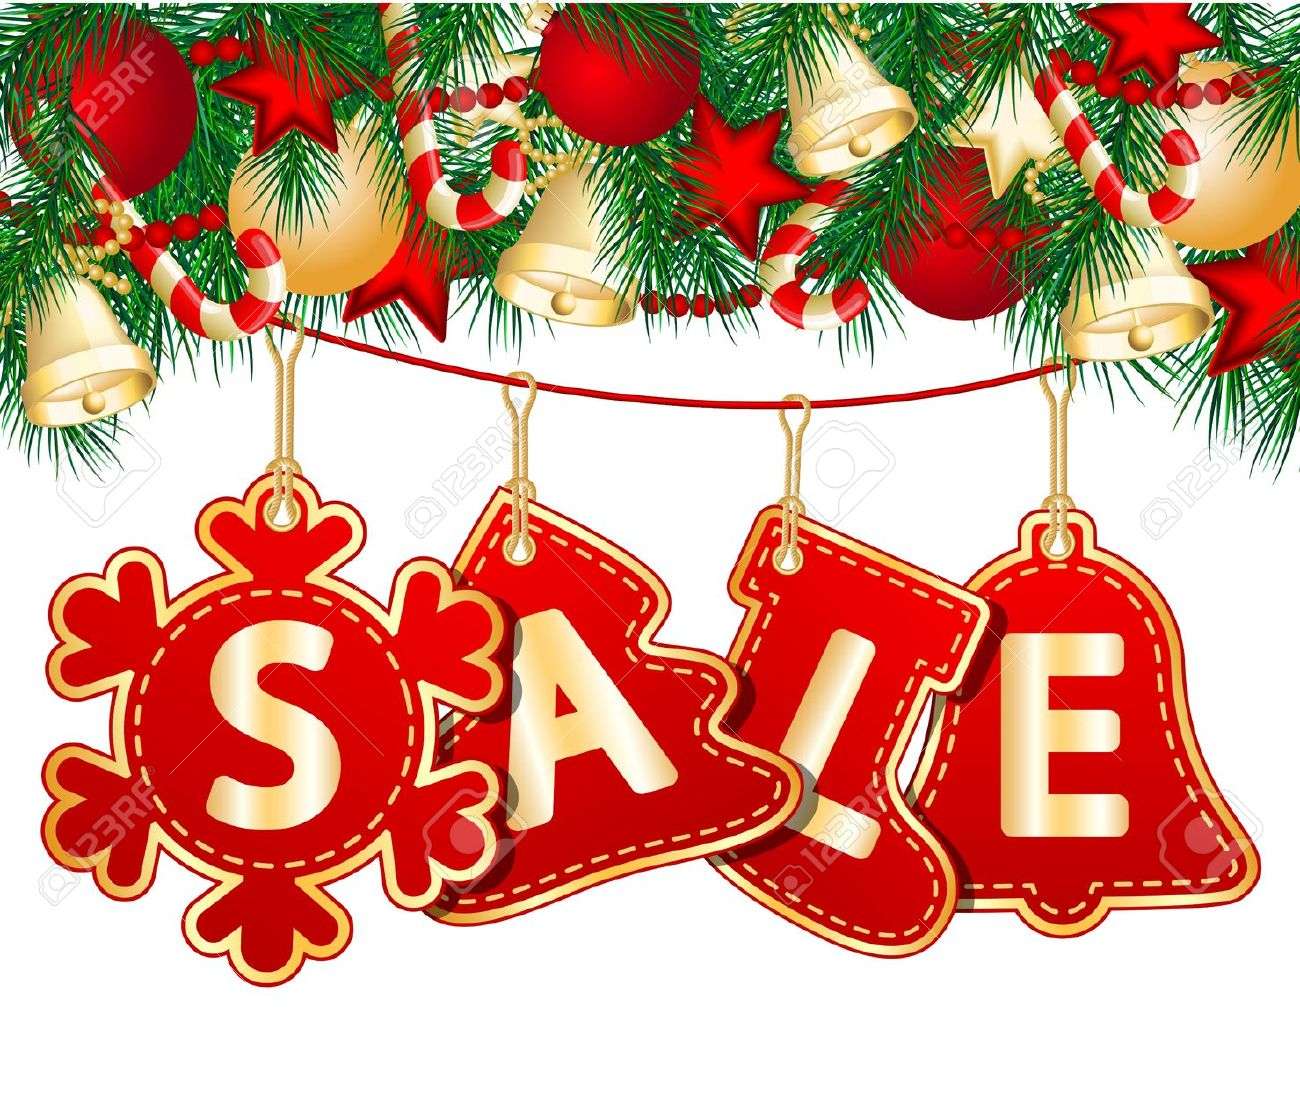 16451786-Christmas-Sale-Tags-on-christmas-signs-illustration-Stock-Vector